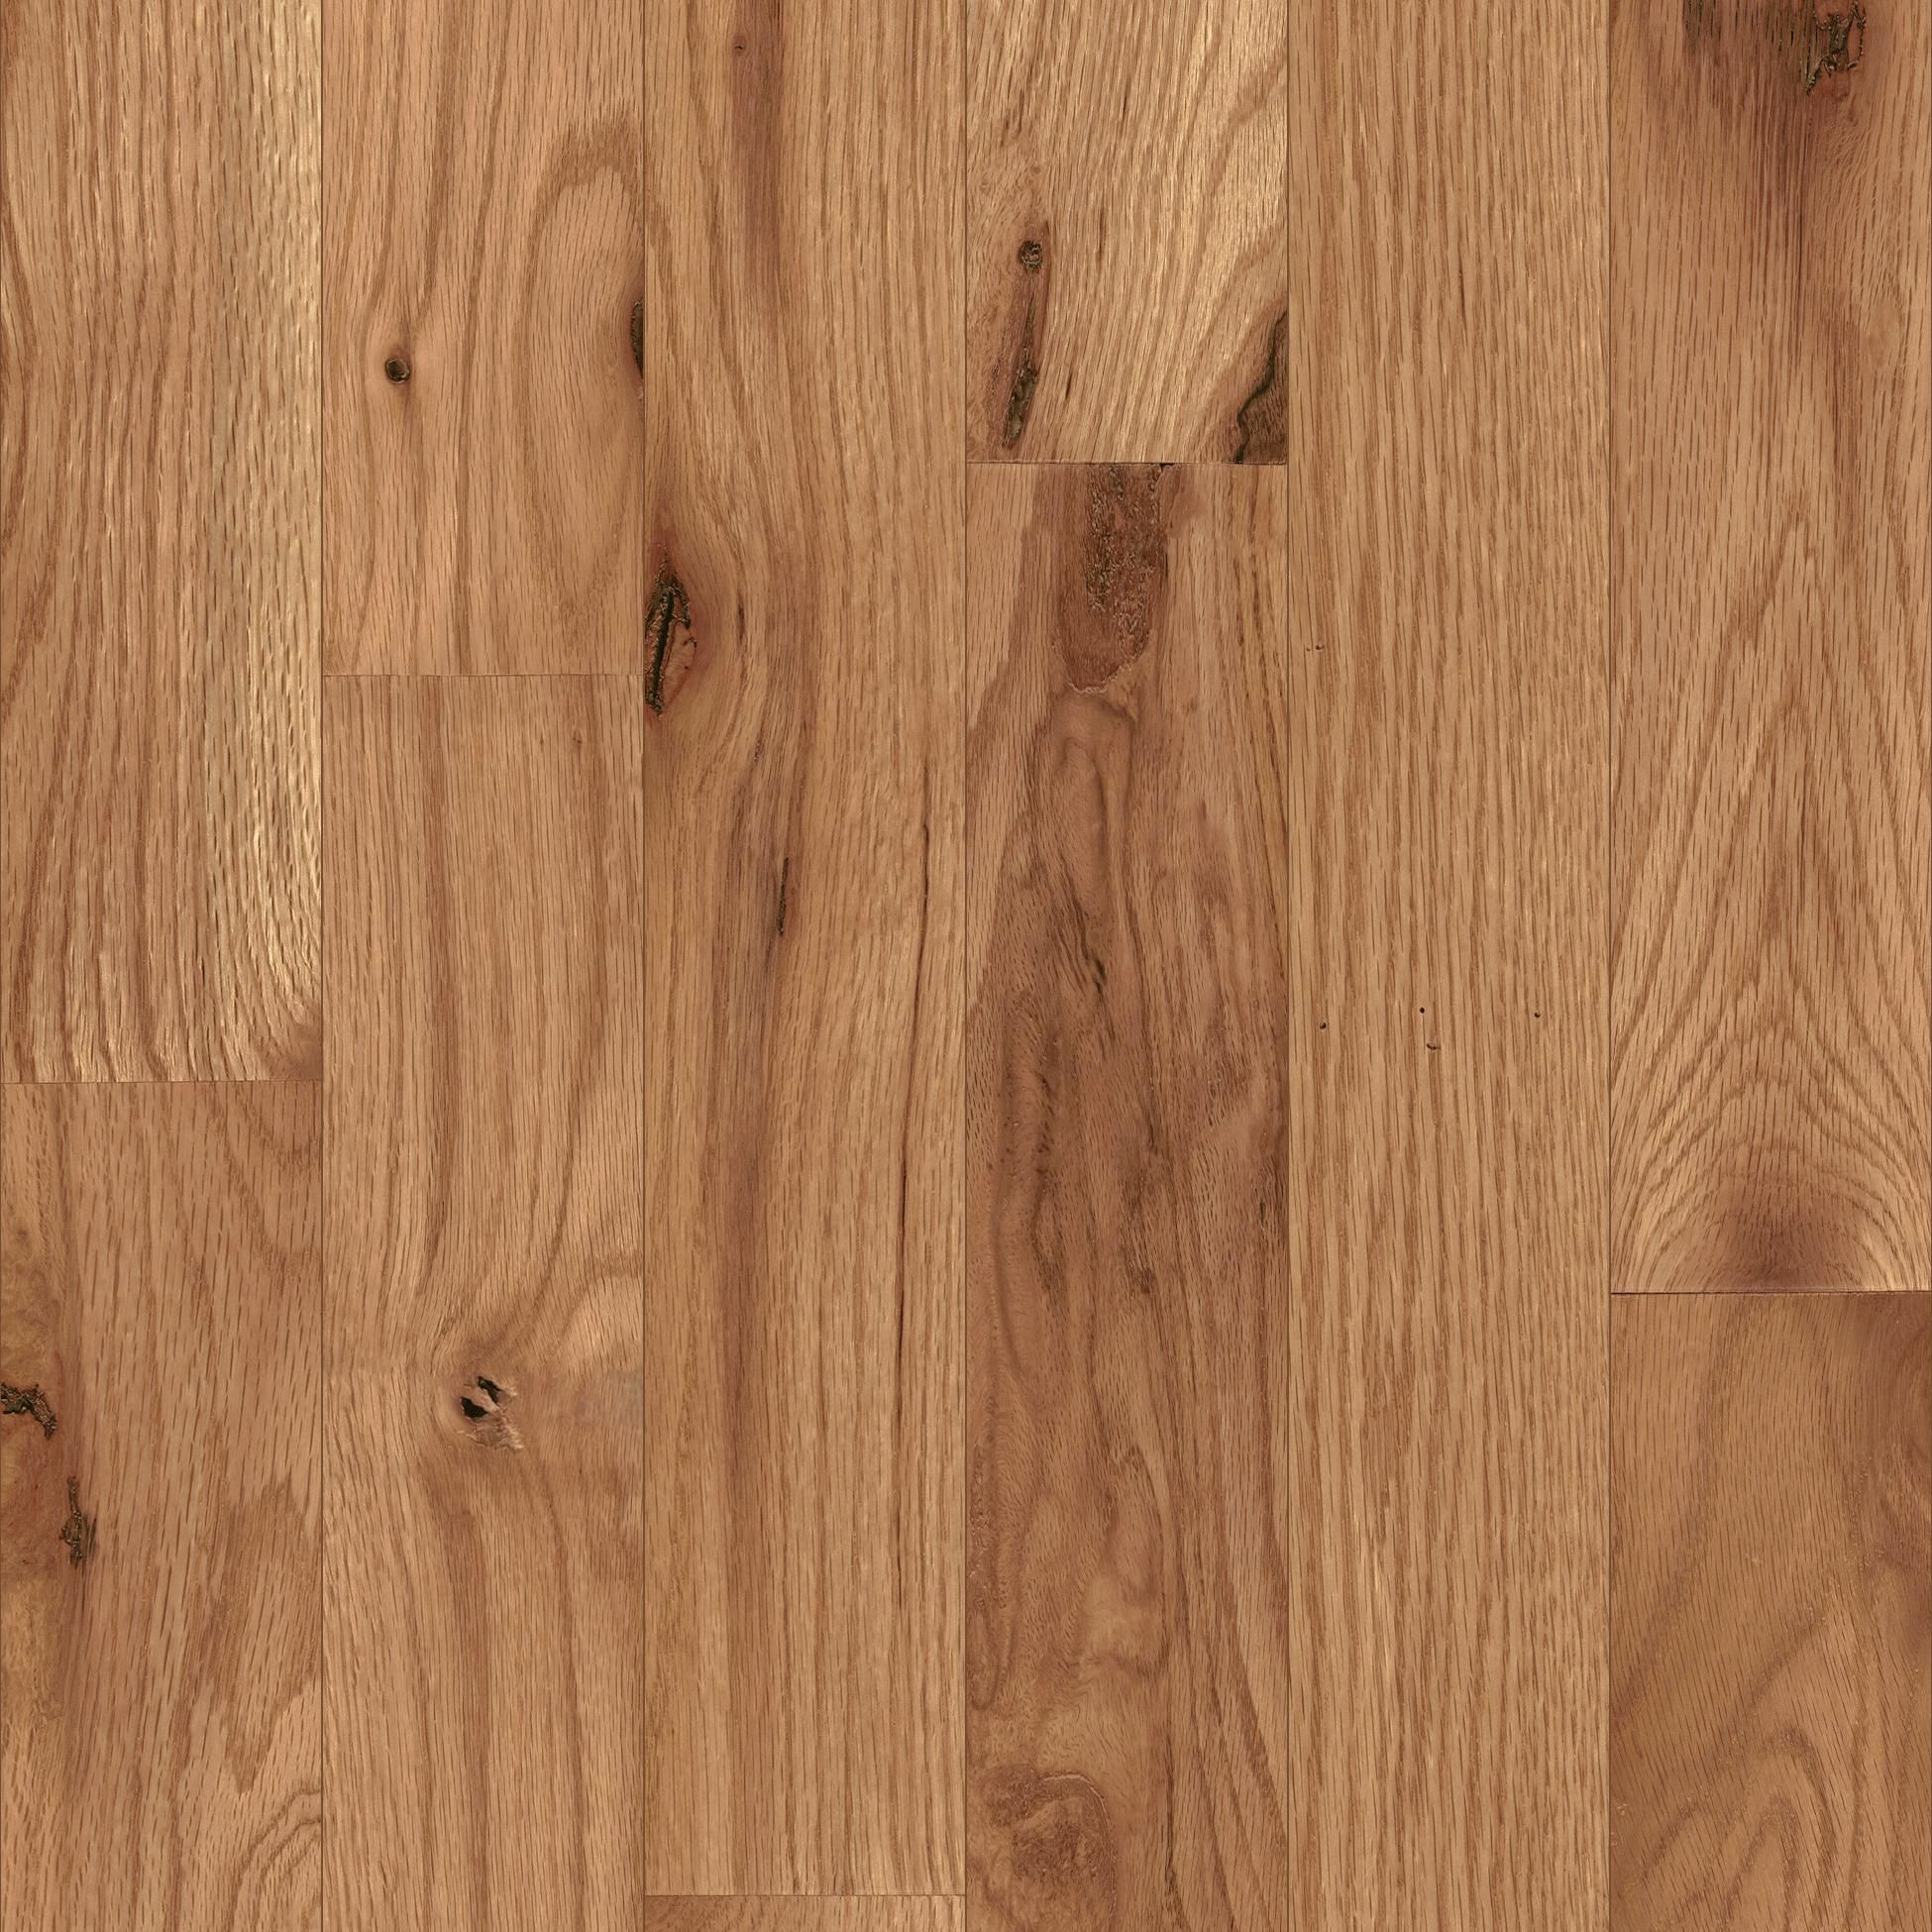 Mohawk Eastridge Value Collection 3 1 4 Wide Oak Natural Solid Hardwood Flooring Flooring Hardwood Floors Cost Of Wood Flooring